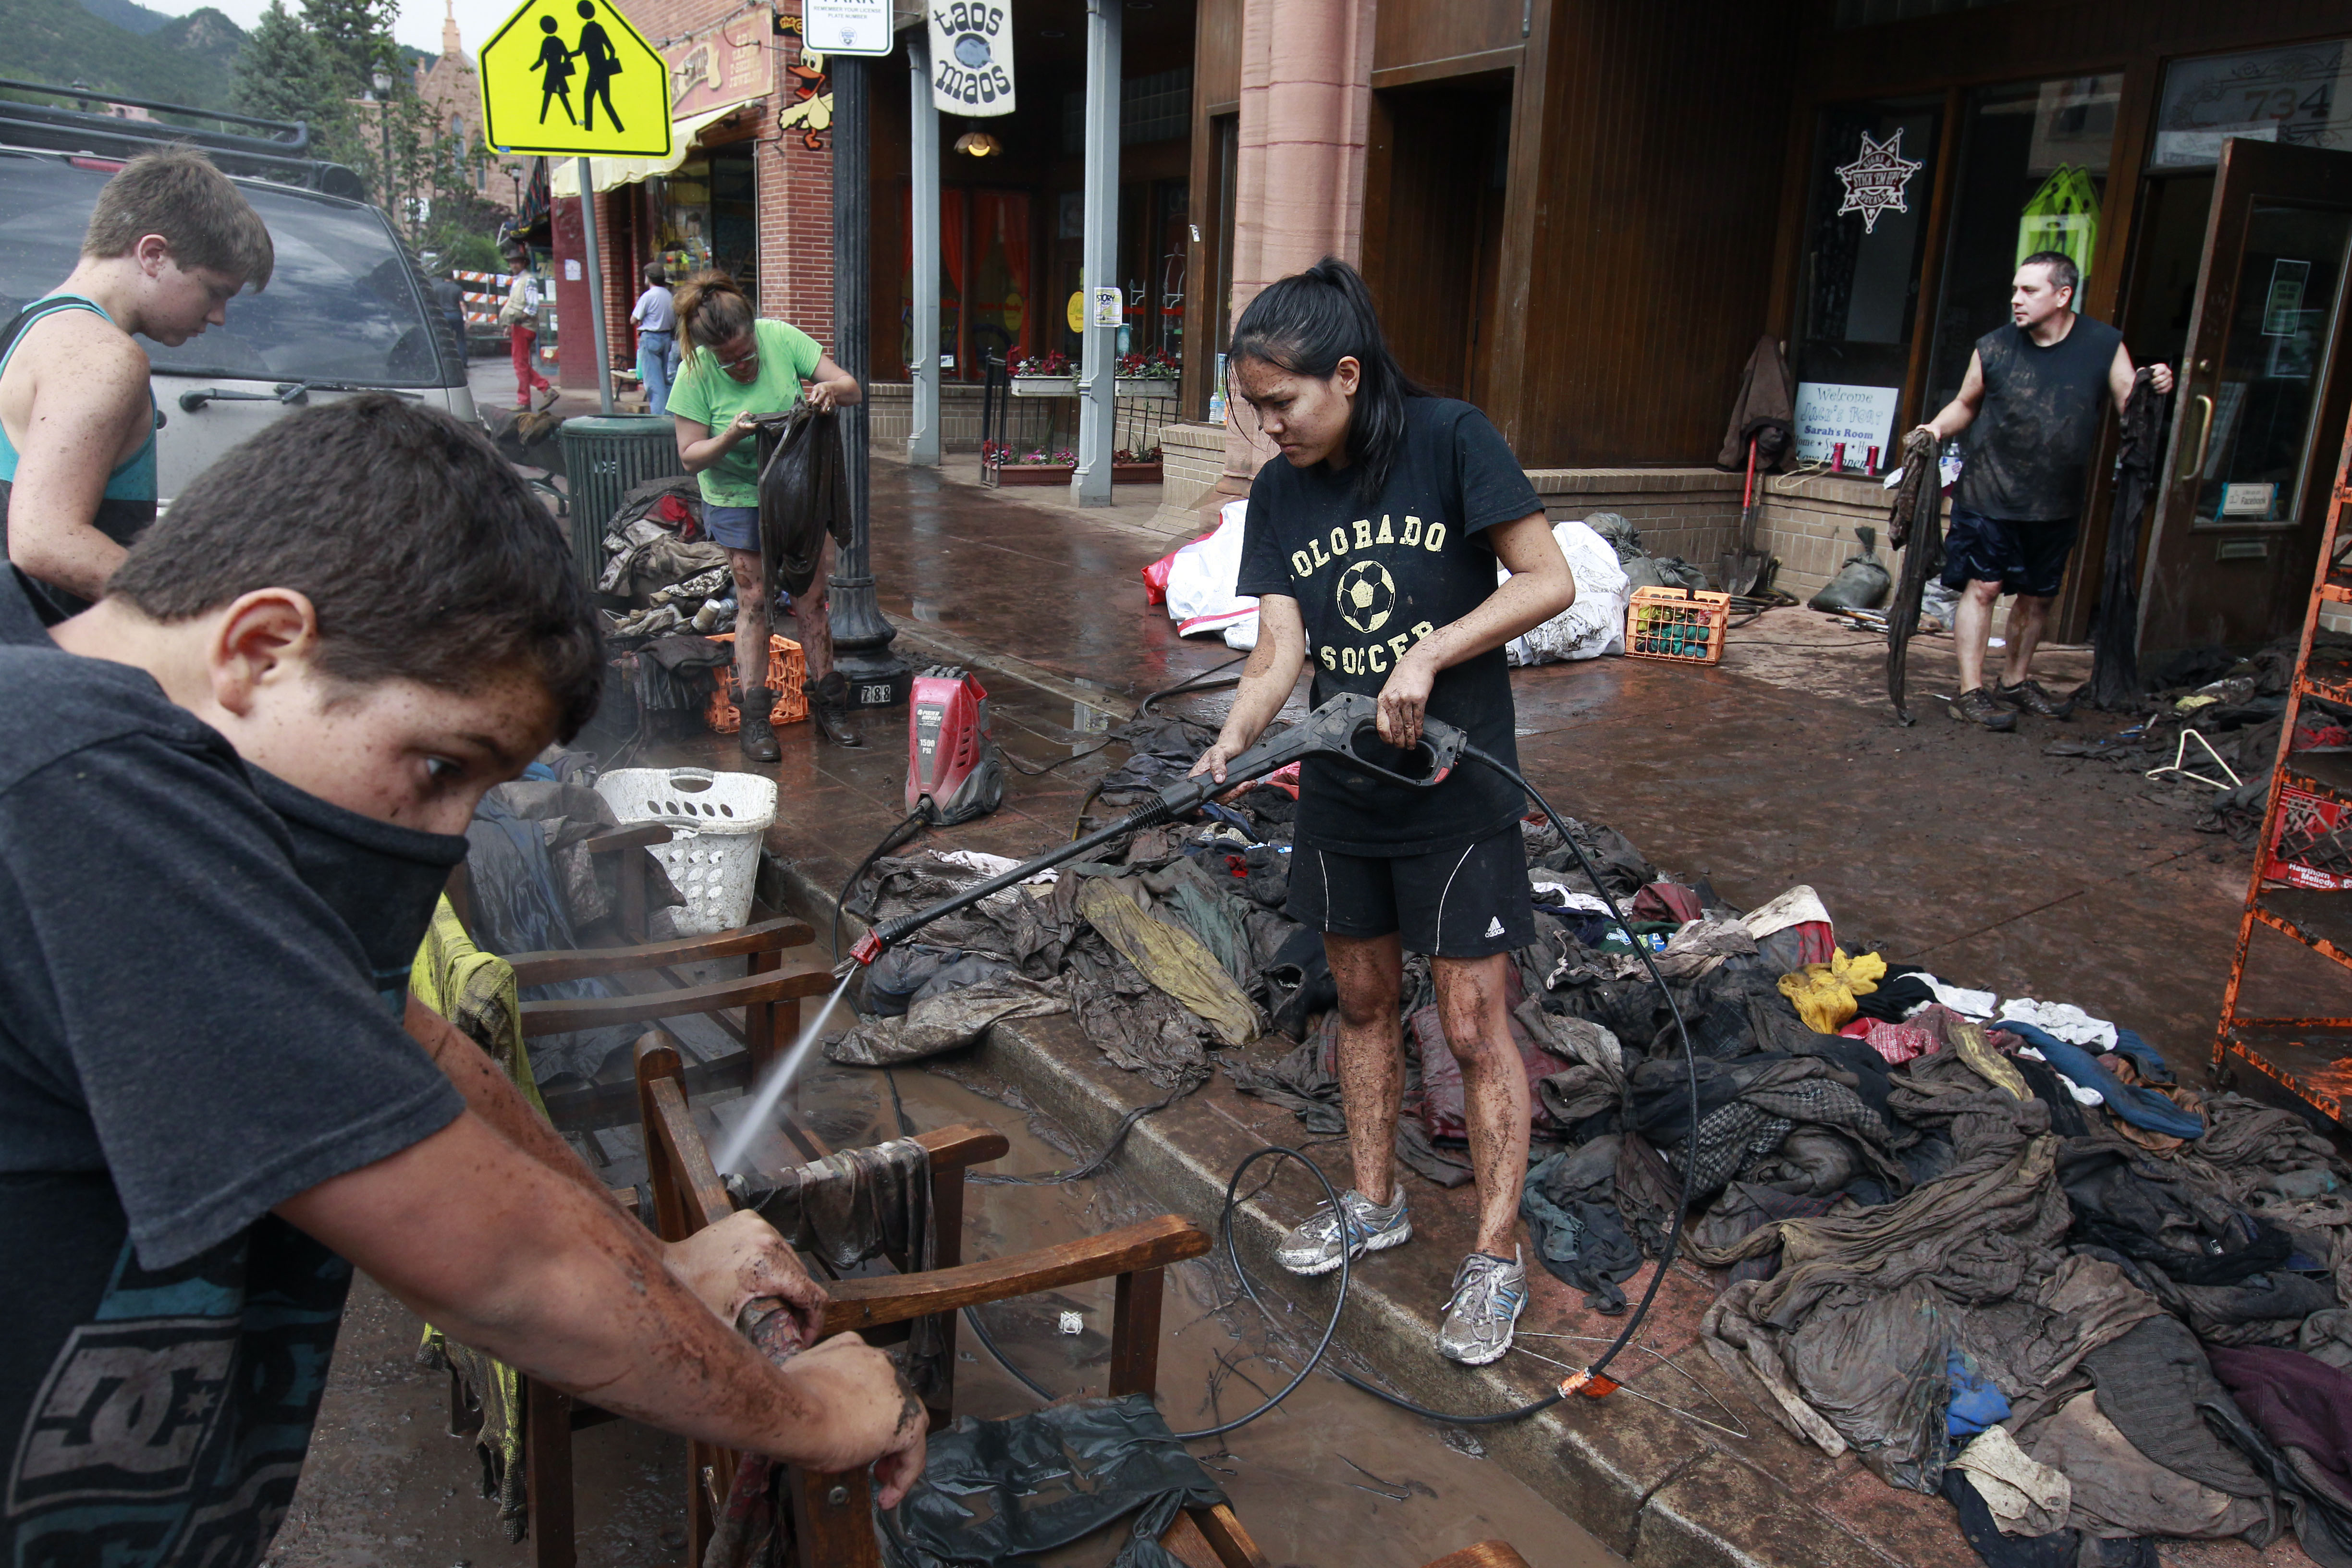 <p>Volunteer and recent local high school graduate Alex Caffery, center, helps local merchant Angie Findley, third from left, wash mud off merchandise at her Stick Em Up! store, which was heavily damaged a few days earlier in a flash flood, in Manitou Springs, Colo., Monday Aug. 12, 2013.</p>